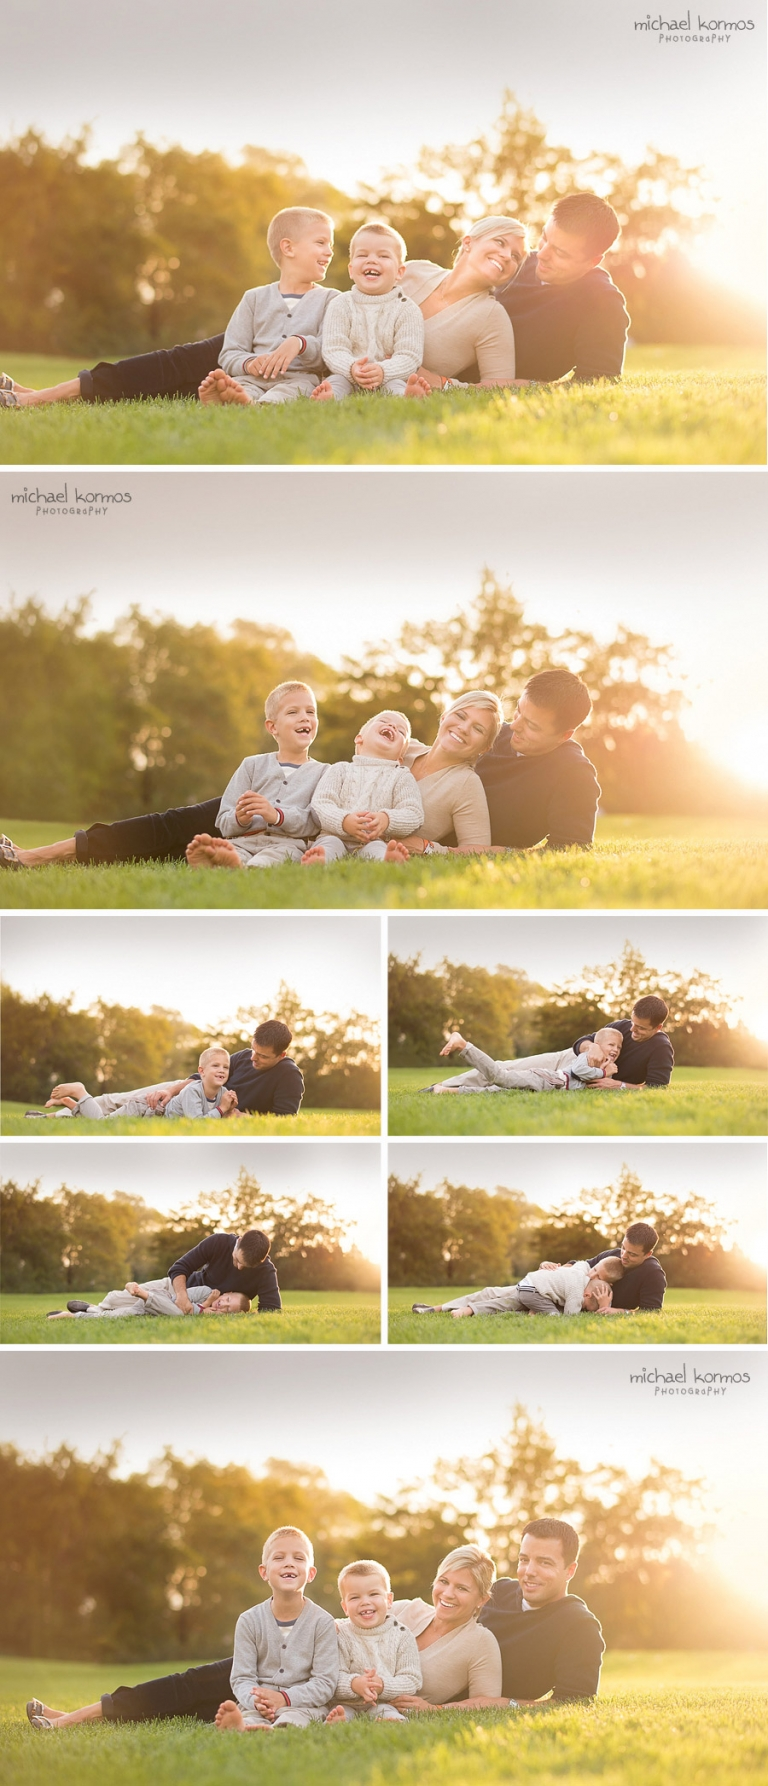 family holiday portrait photography outdoors in Manhattan